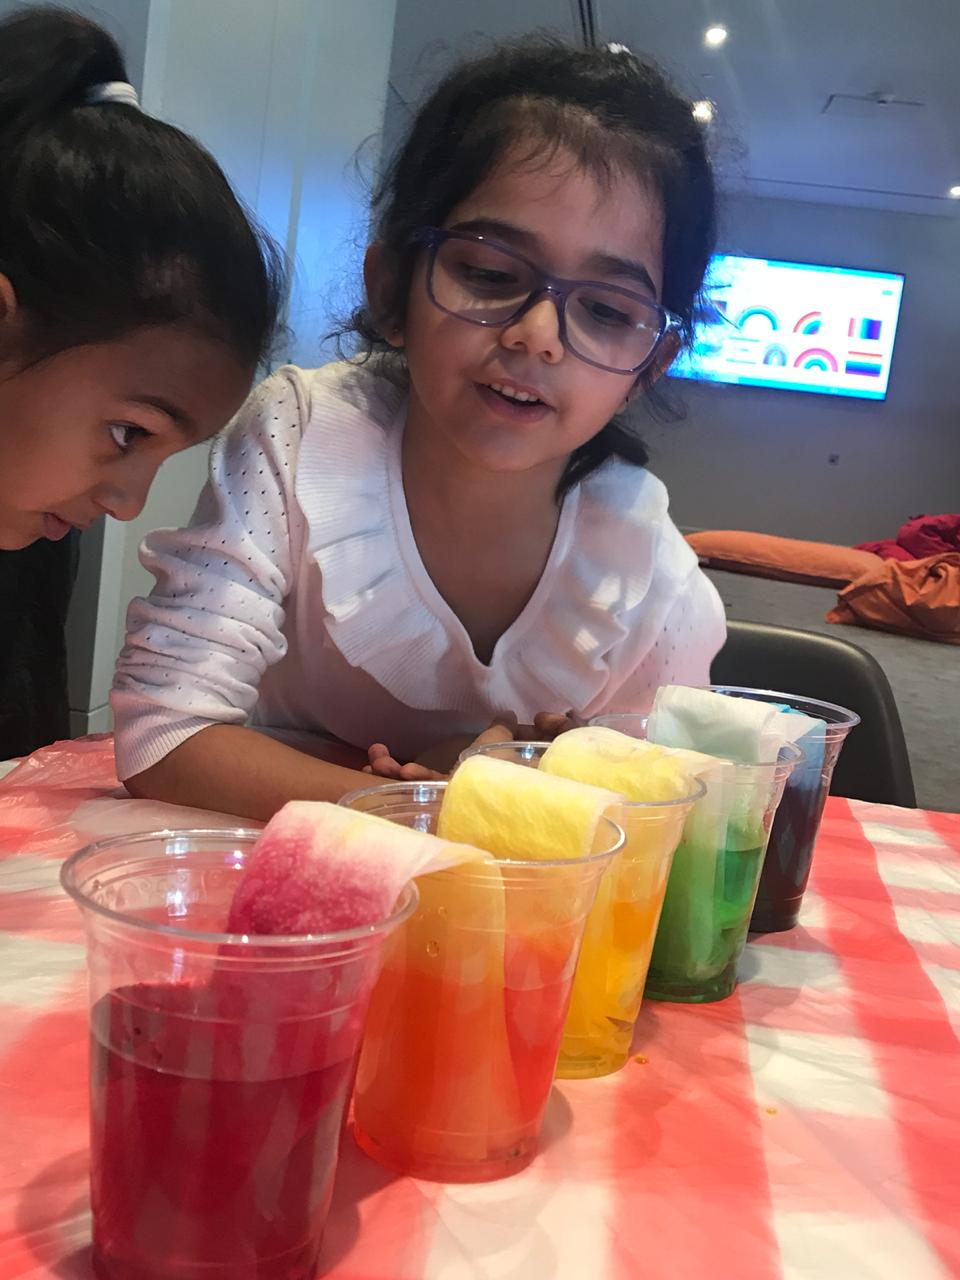 Children's Spring Camps in Dubai - 2019 - A Guide to Help you Select the Perfect Camp for your Child